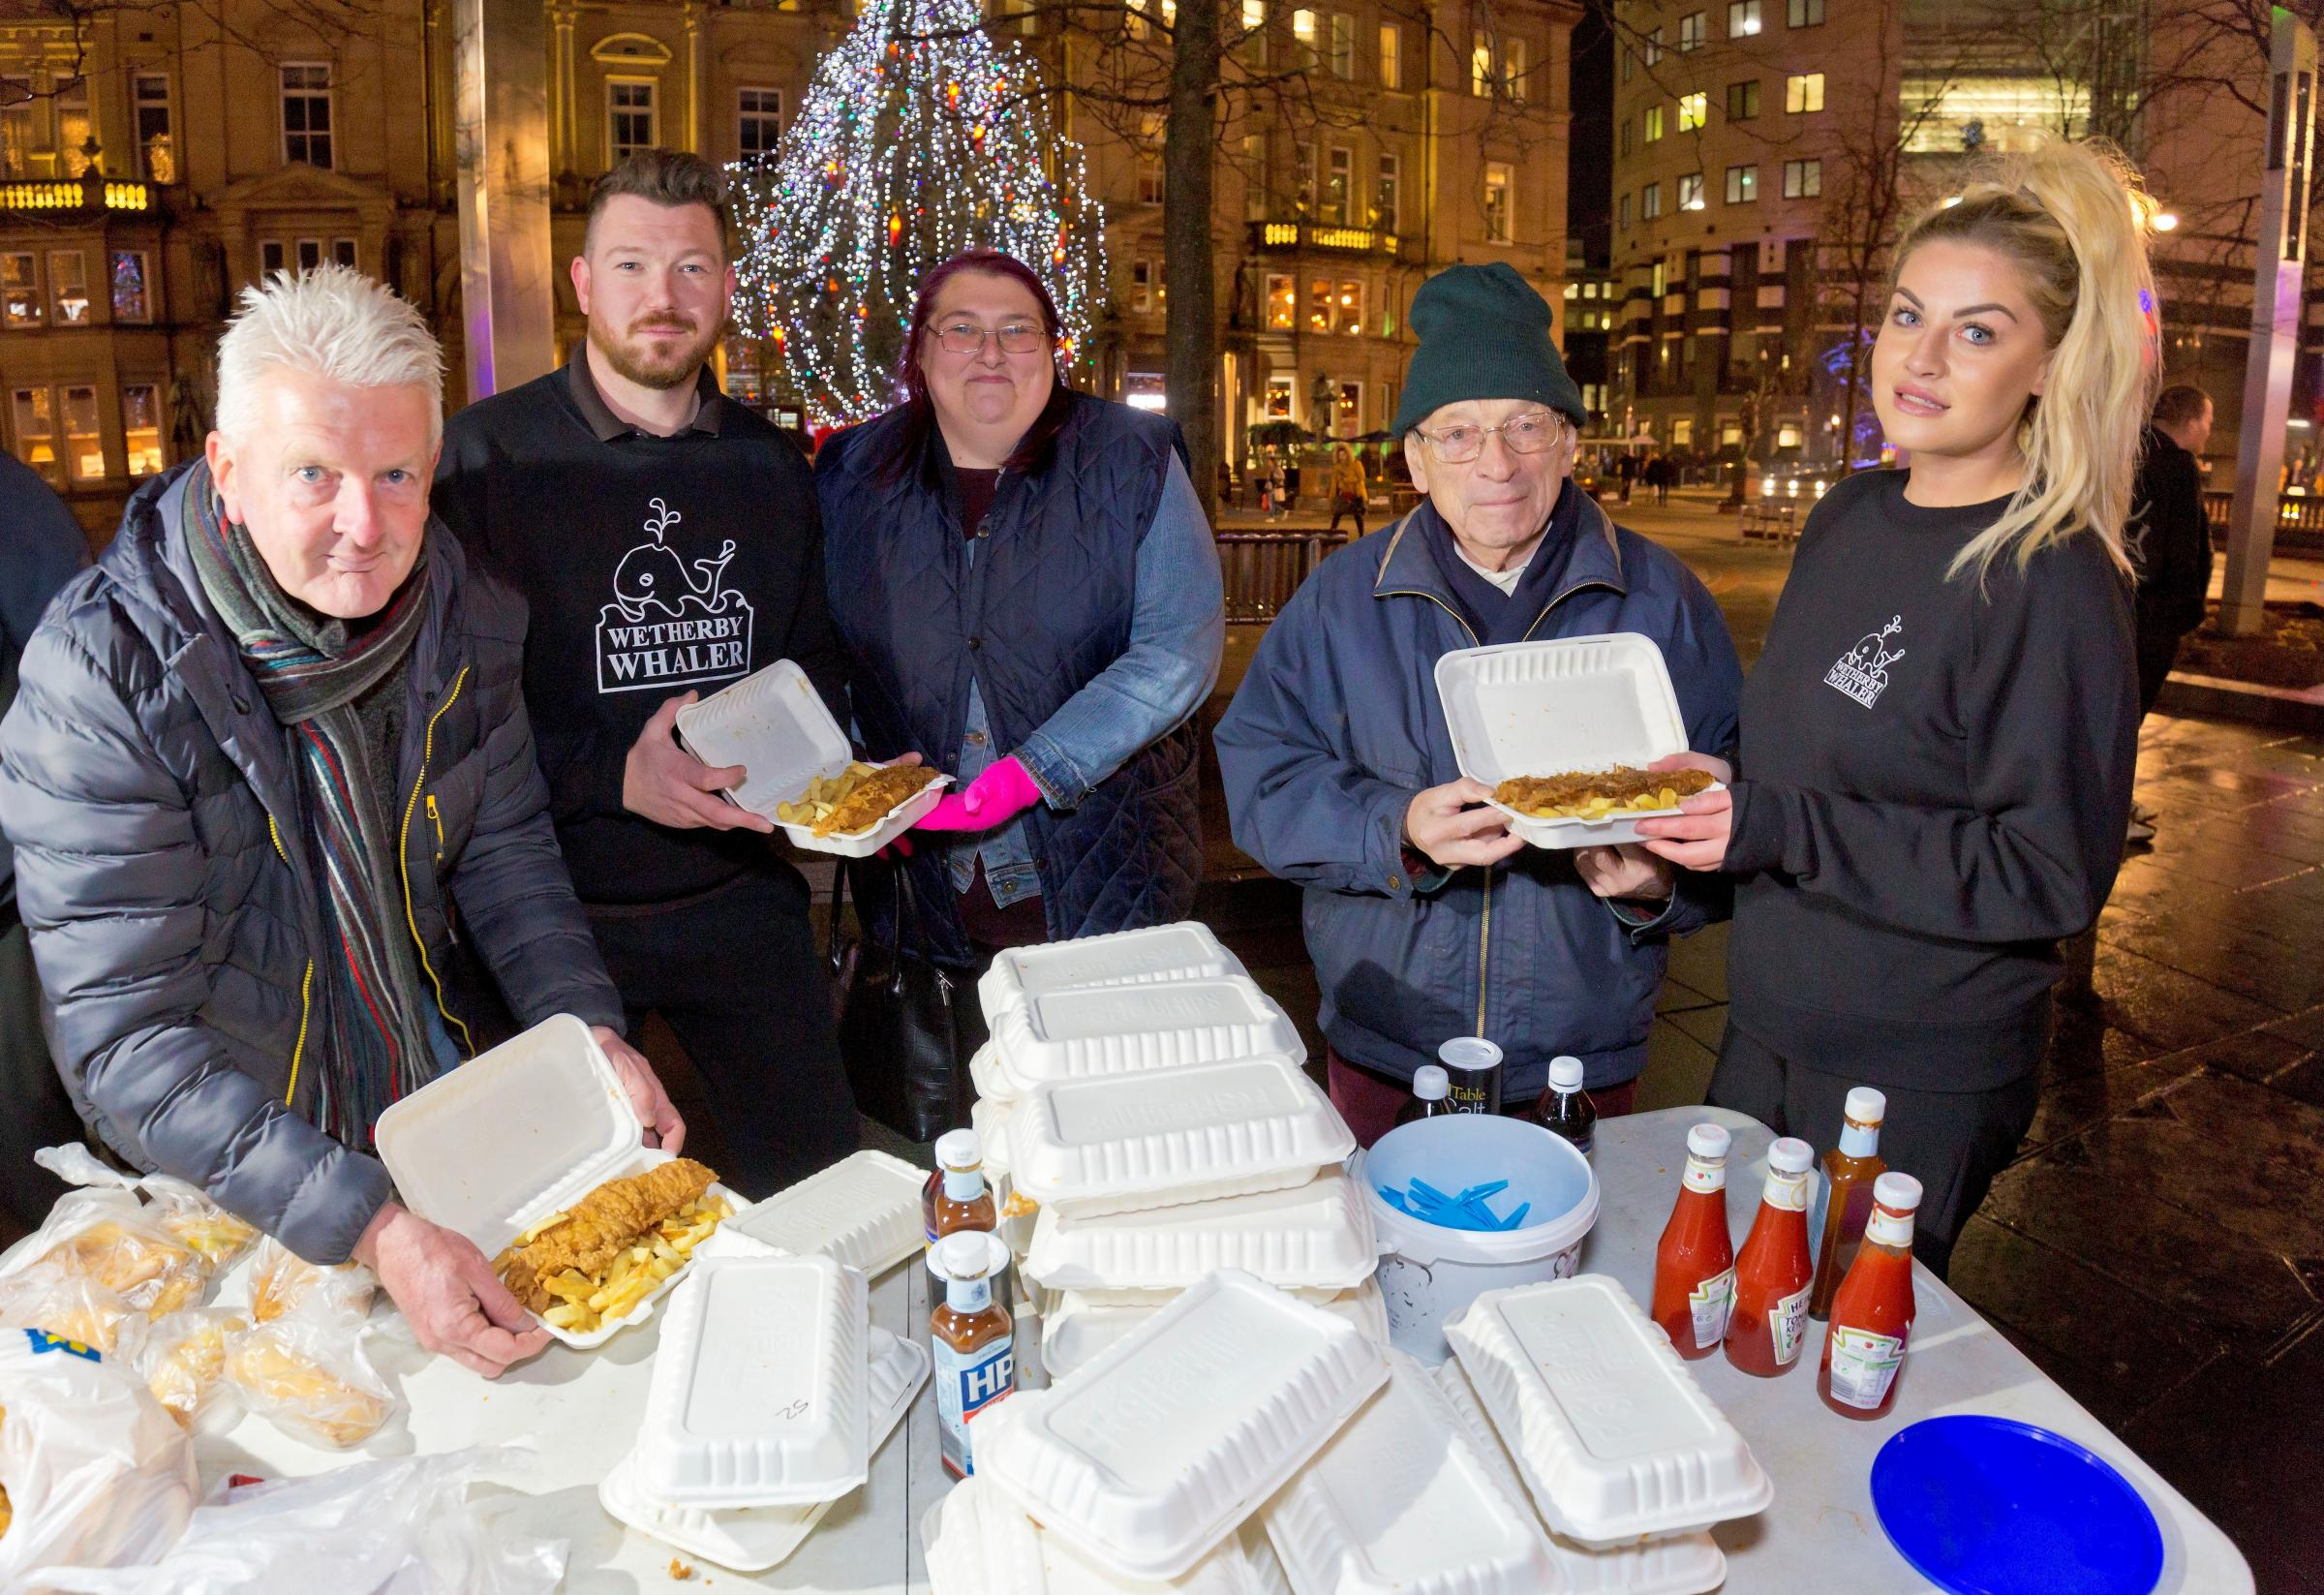 Kevin Bell (far left) from Leeds Homeless Partnership helps to hand out fish and chips with Owen Sharp and Joanne Jordan (far right) from Wetherby Whaler.  Matt Roberts